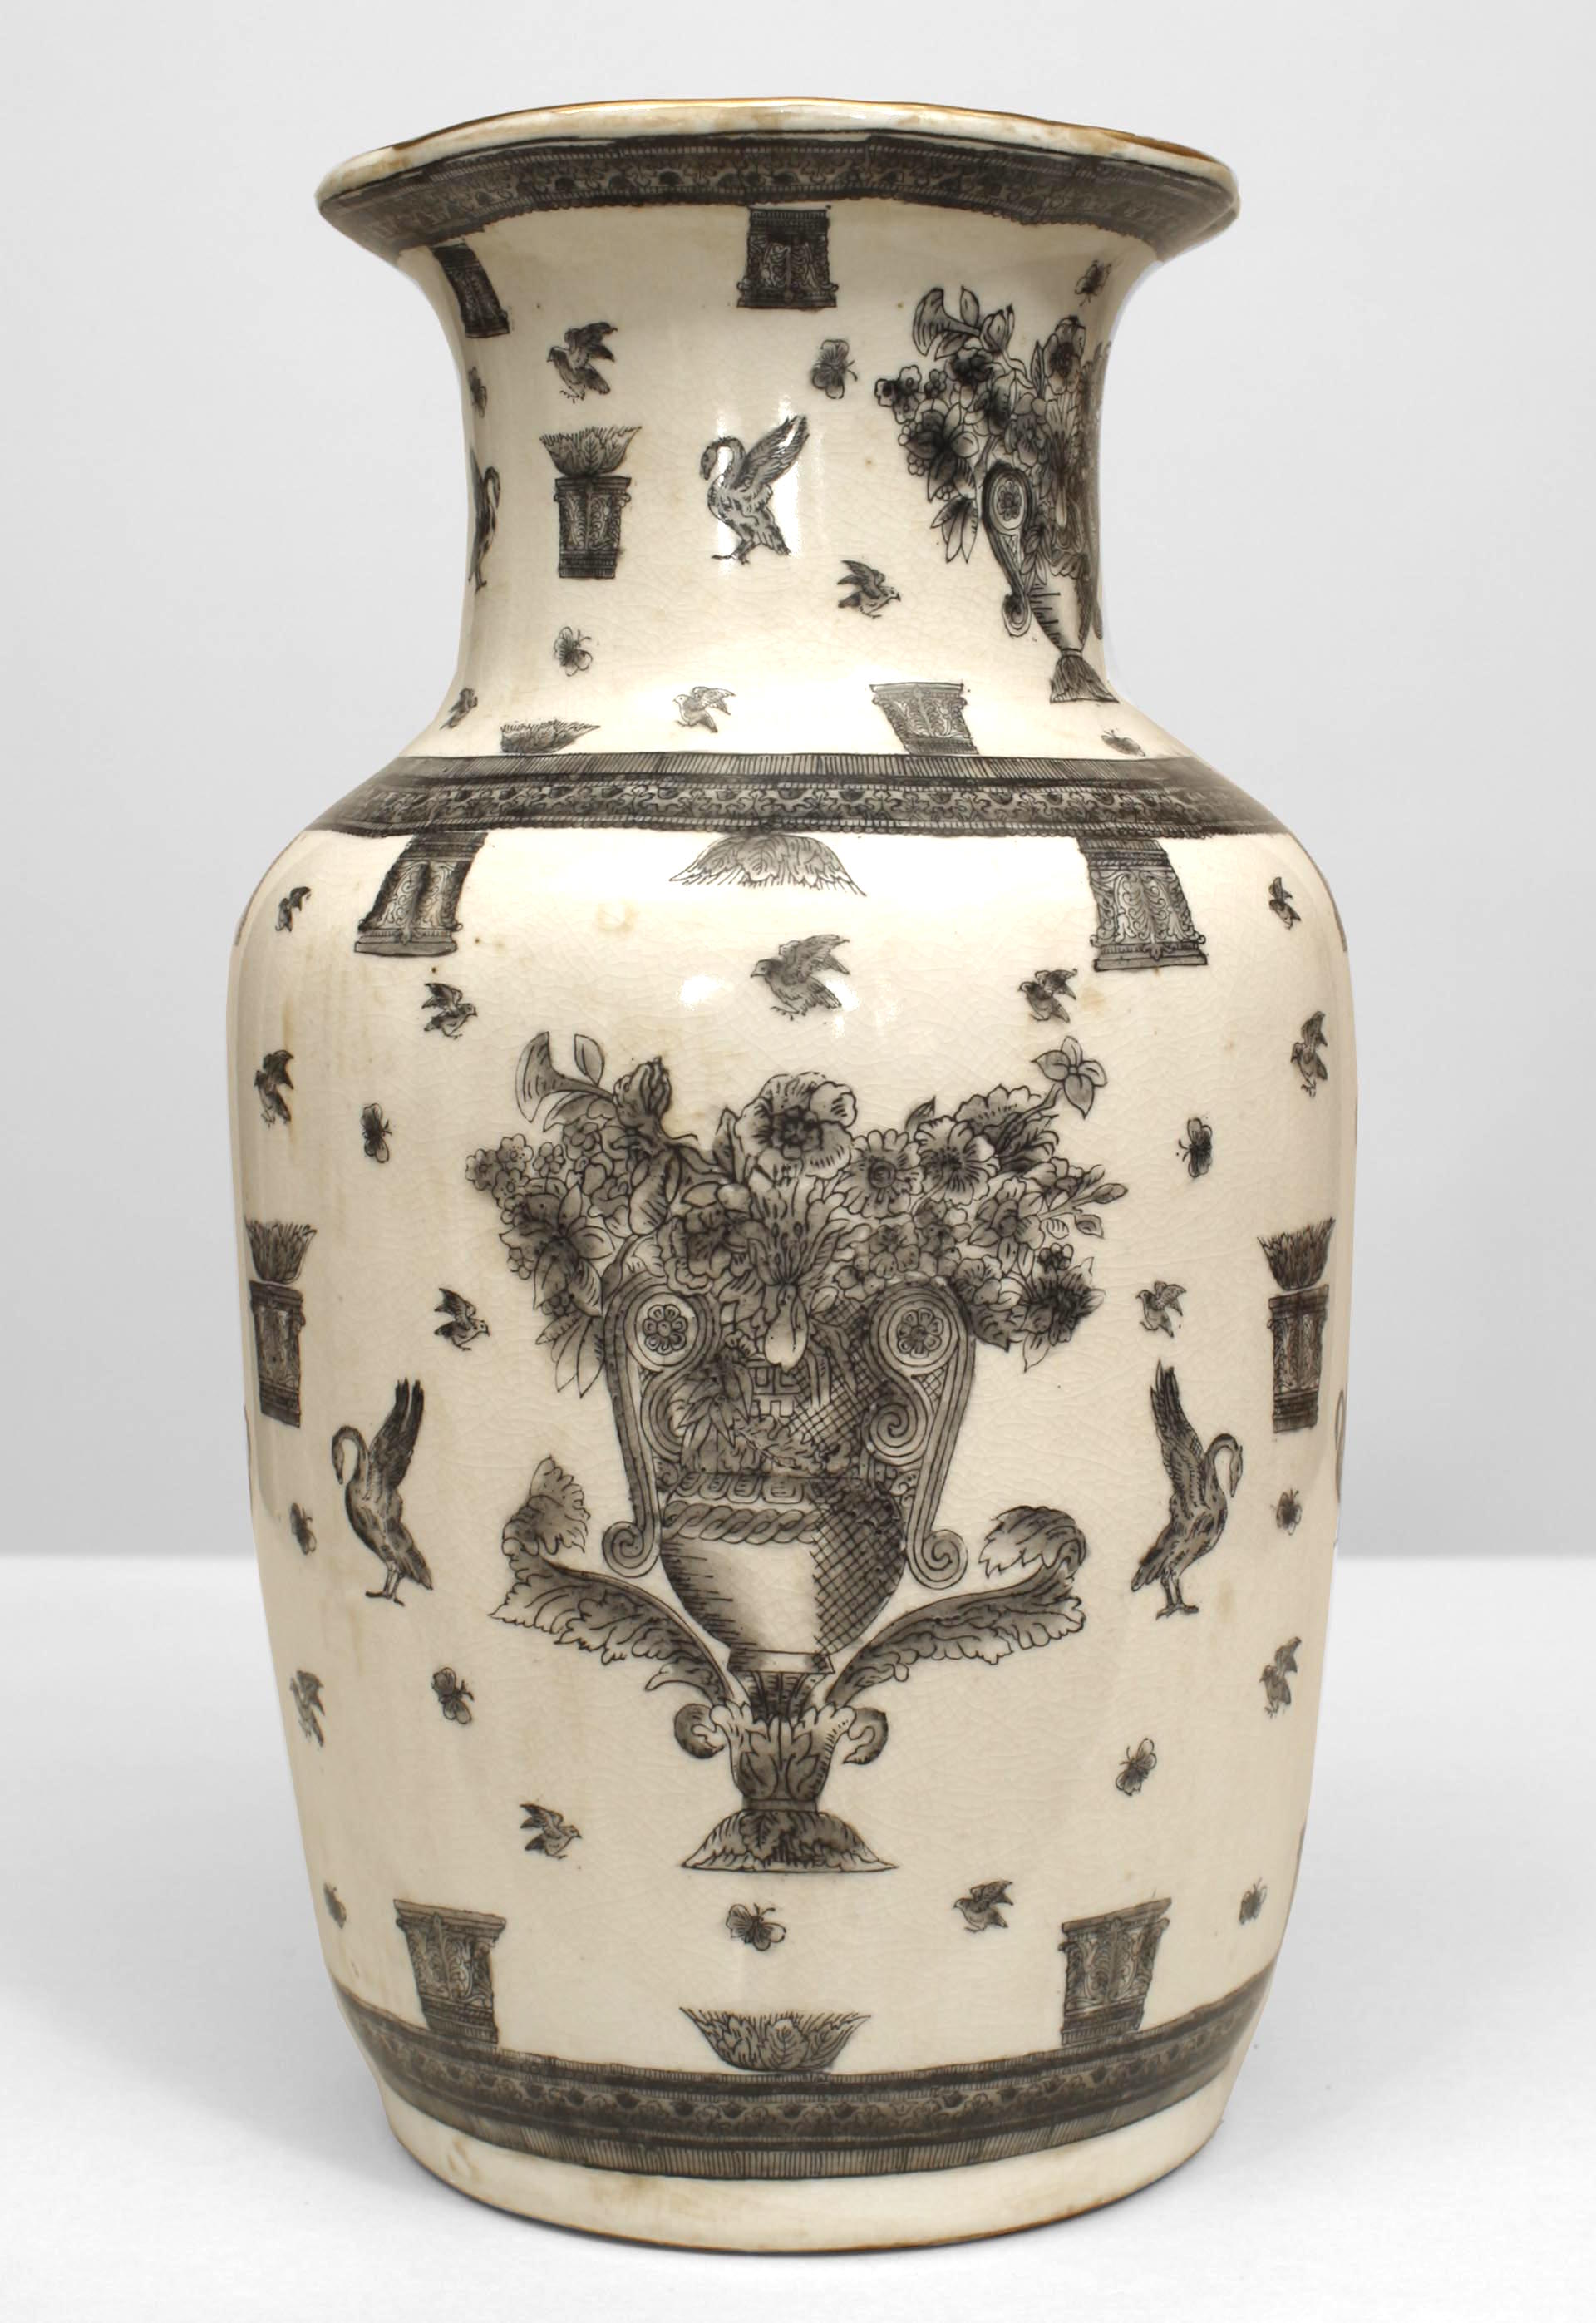 Pair of asian chinese style 19th cent white and black decorated butterflies pair of asian chinese style 19th cent white and black decorated vases with large urns filled with flowers along with birds and butterflies reviewsmspy